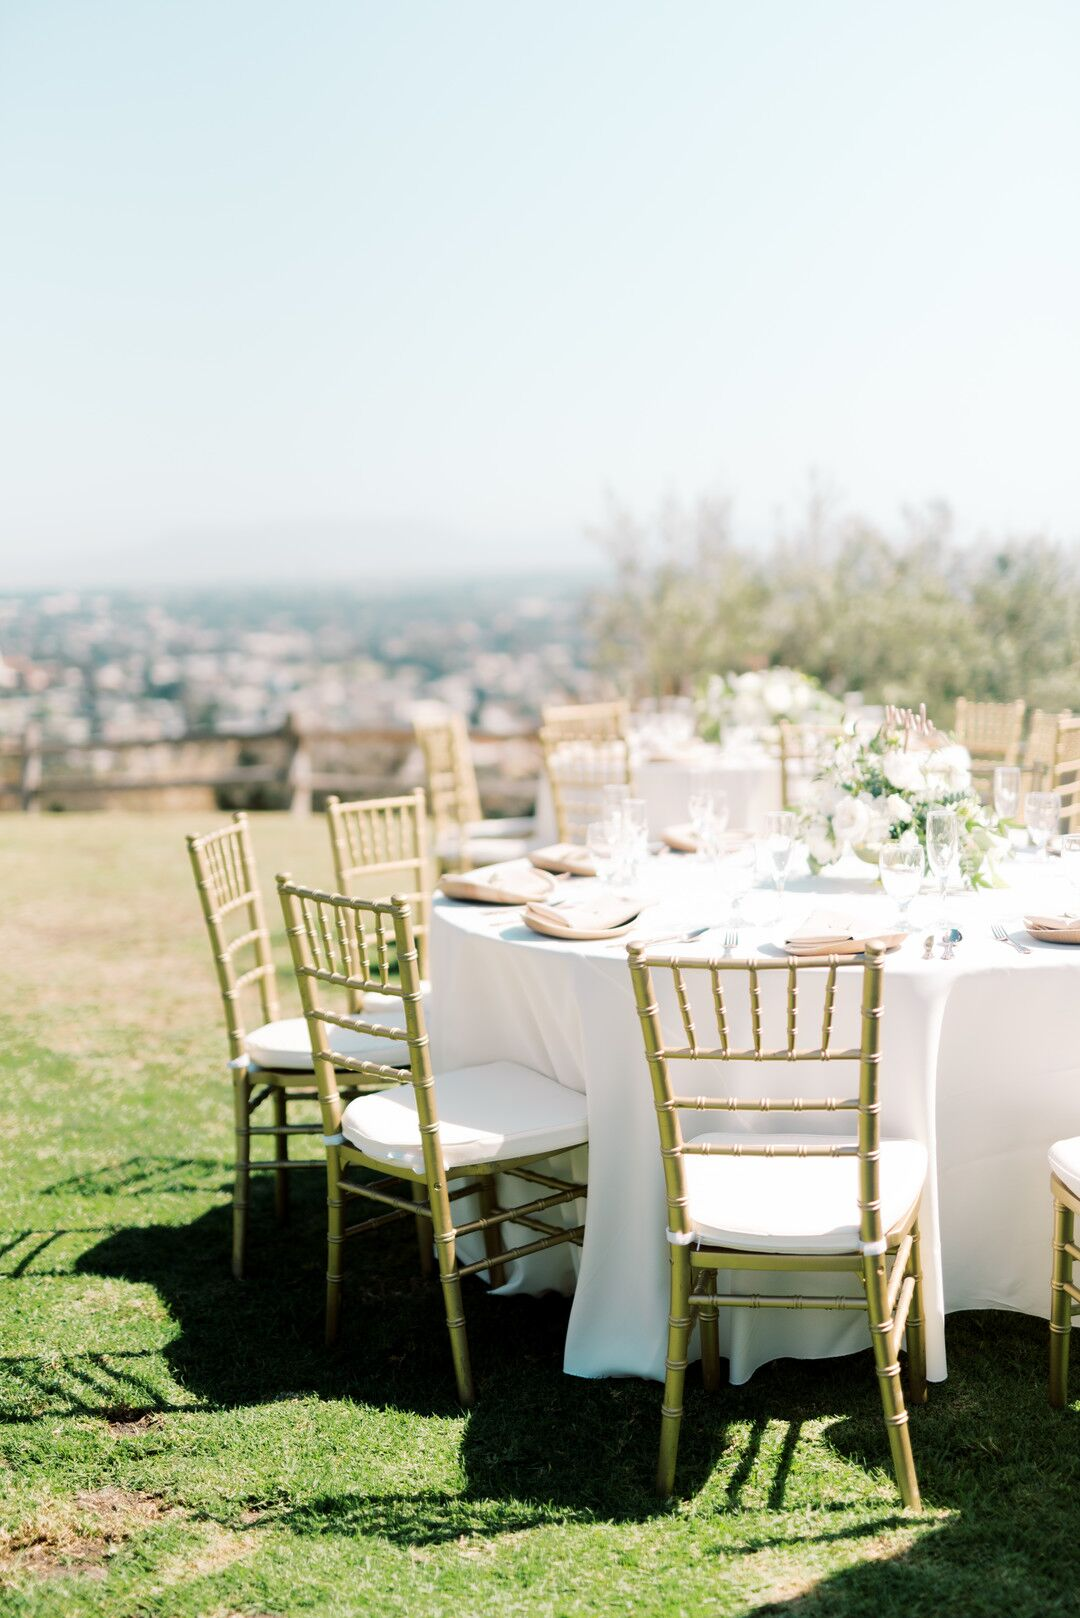 wwww.santabarbawedding.com | Planner: Vintage Heart Events | Ceremony Venue: Serra Cross Park | Photographer: Haley Richter Photography | Reception Site